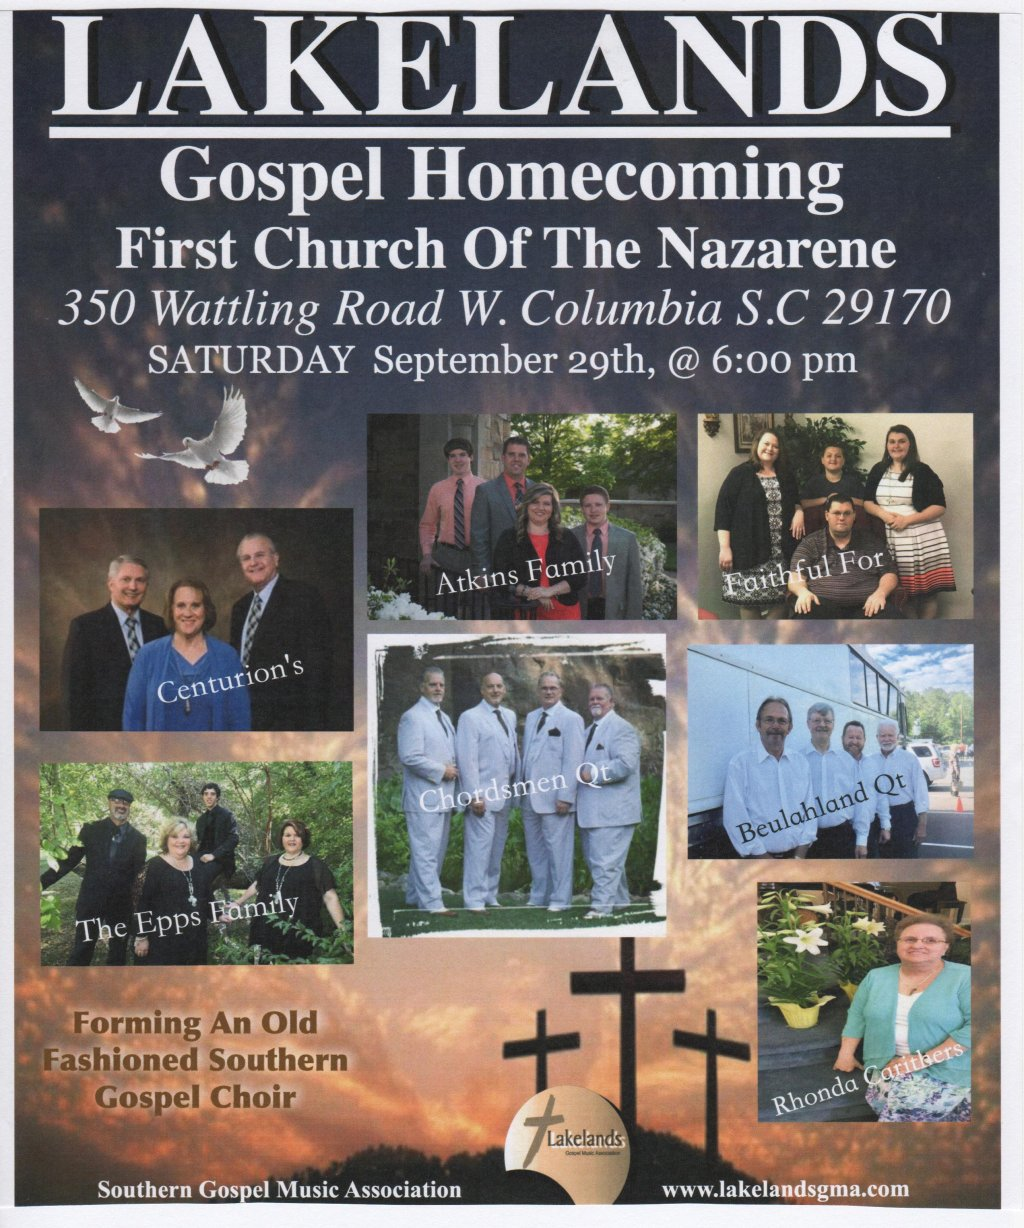 Lakelands Gospel Homecoming at 6:00